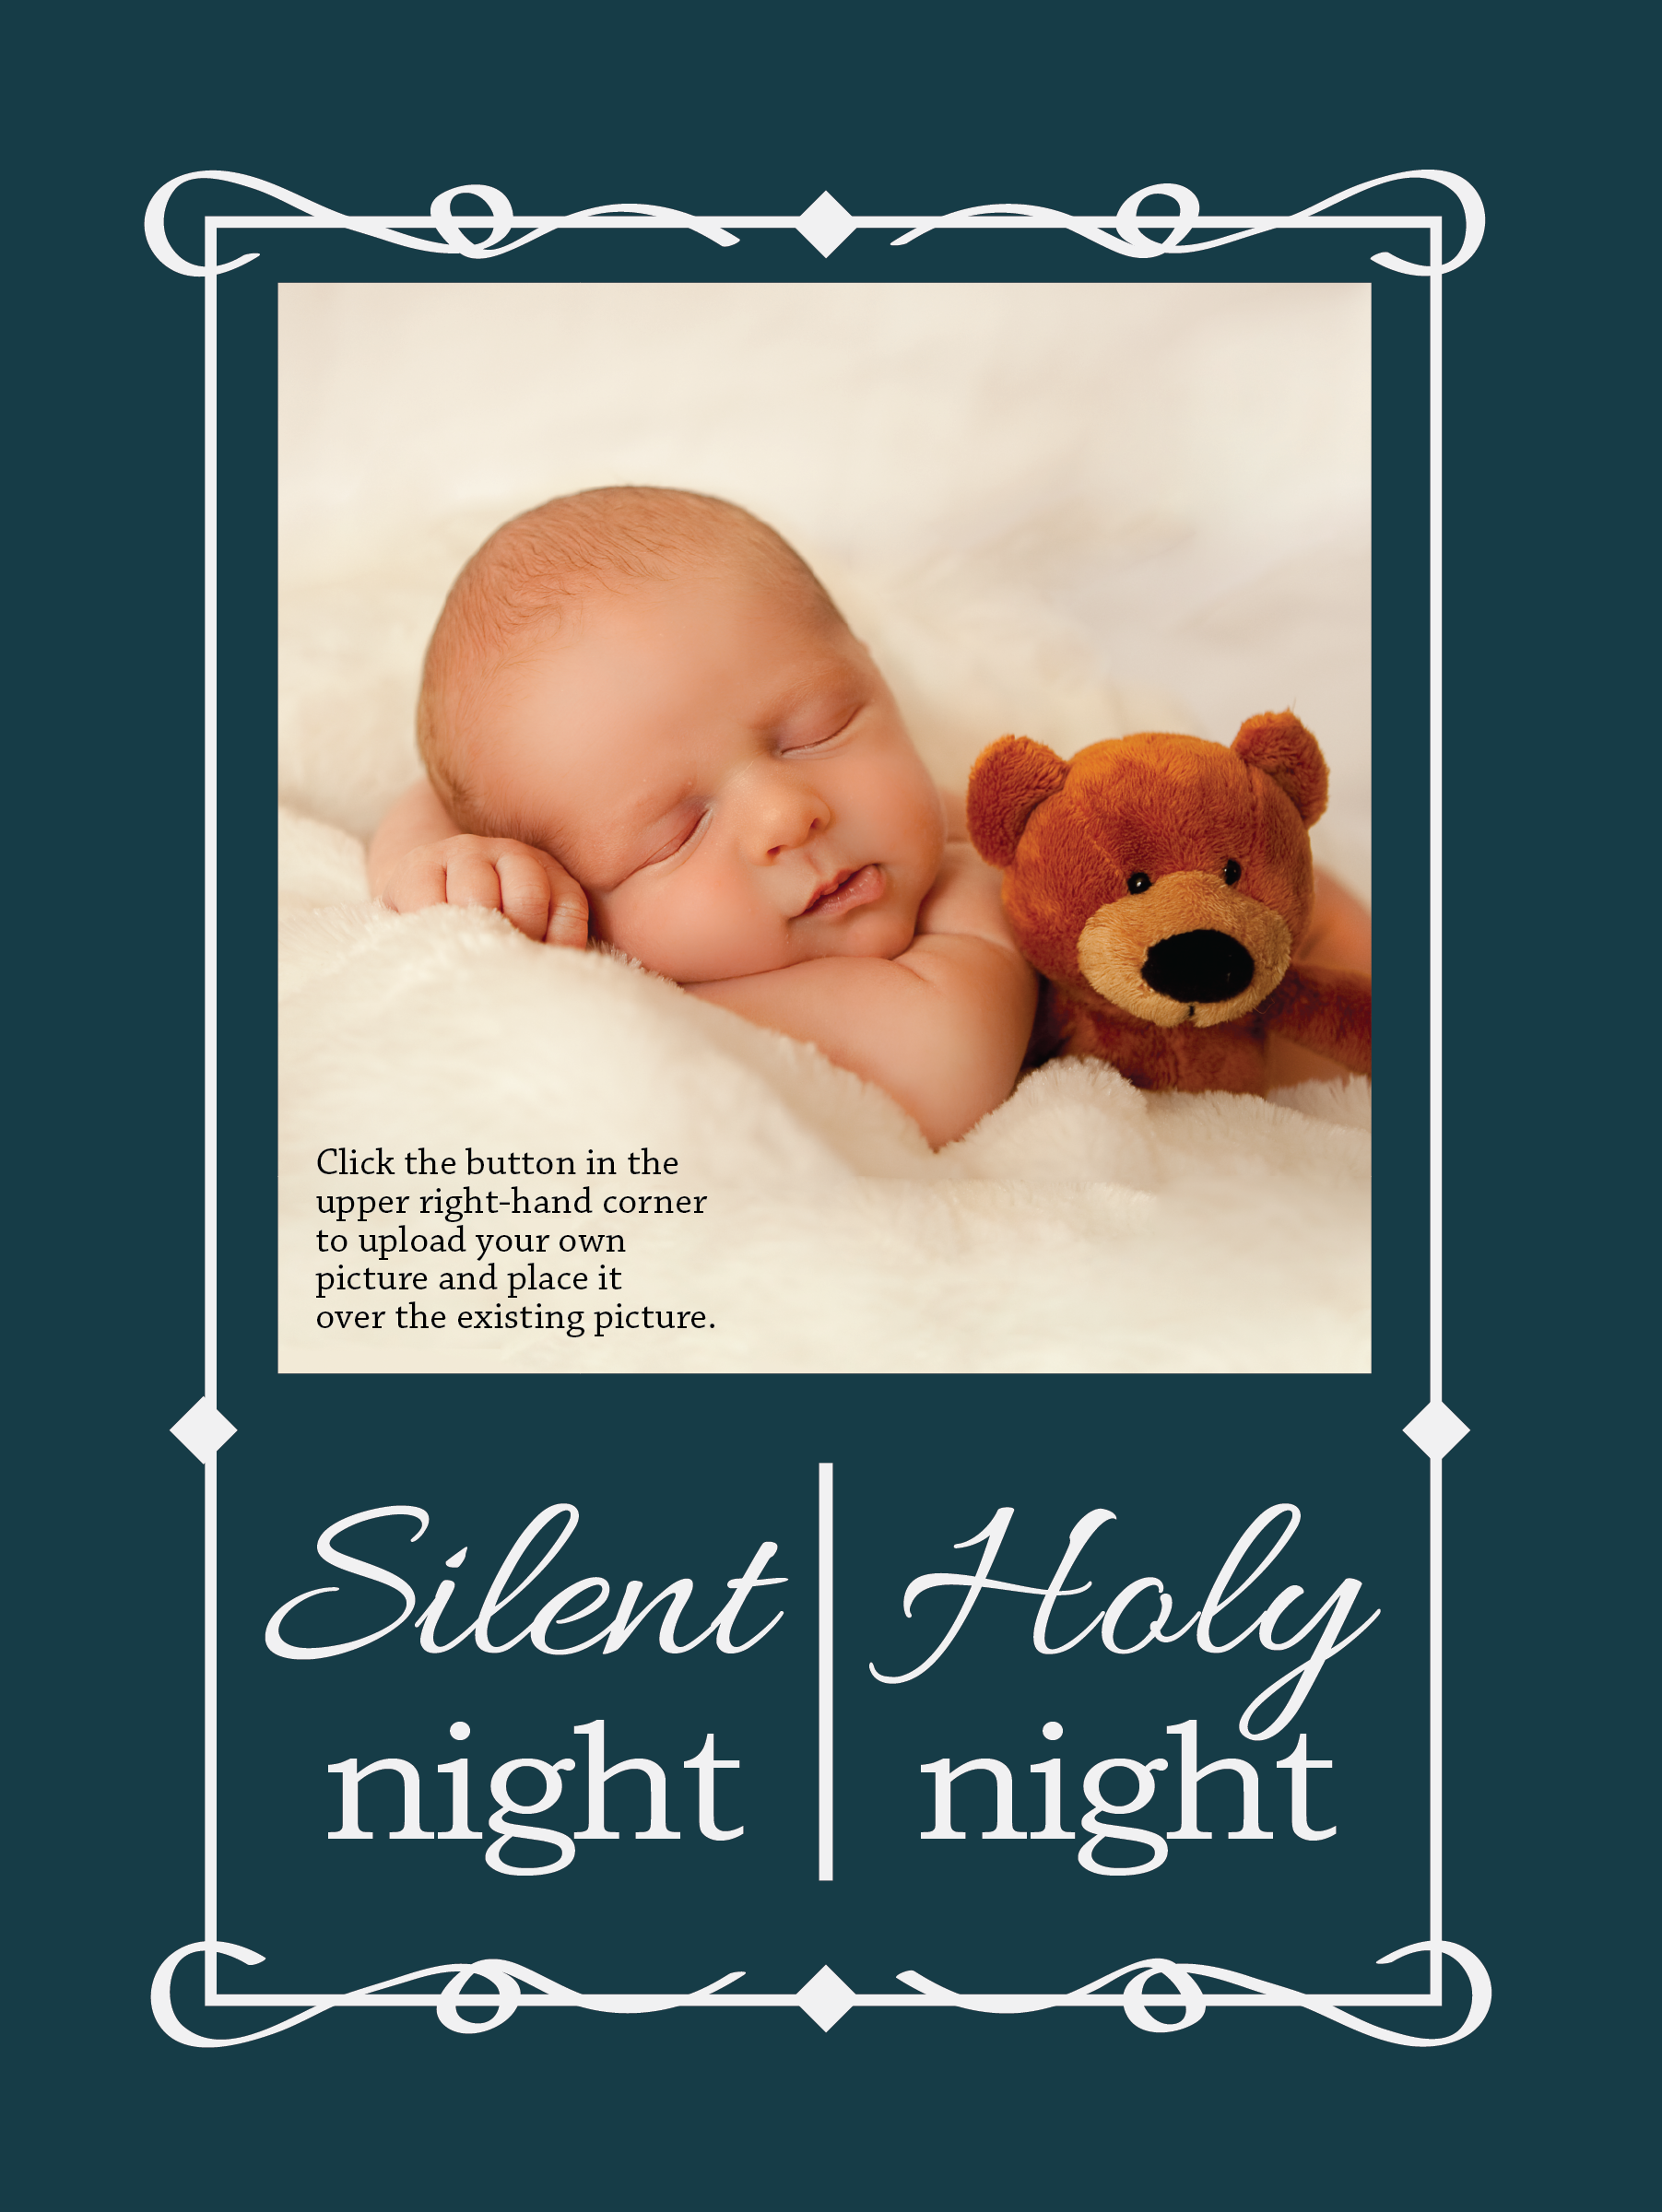 Holiday Card Design Silent Night Holiday Card Template Just Look At This Cute Baby Holiday Design Card Holiday Card Template Card Design